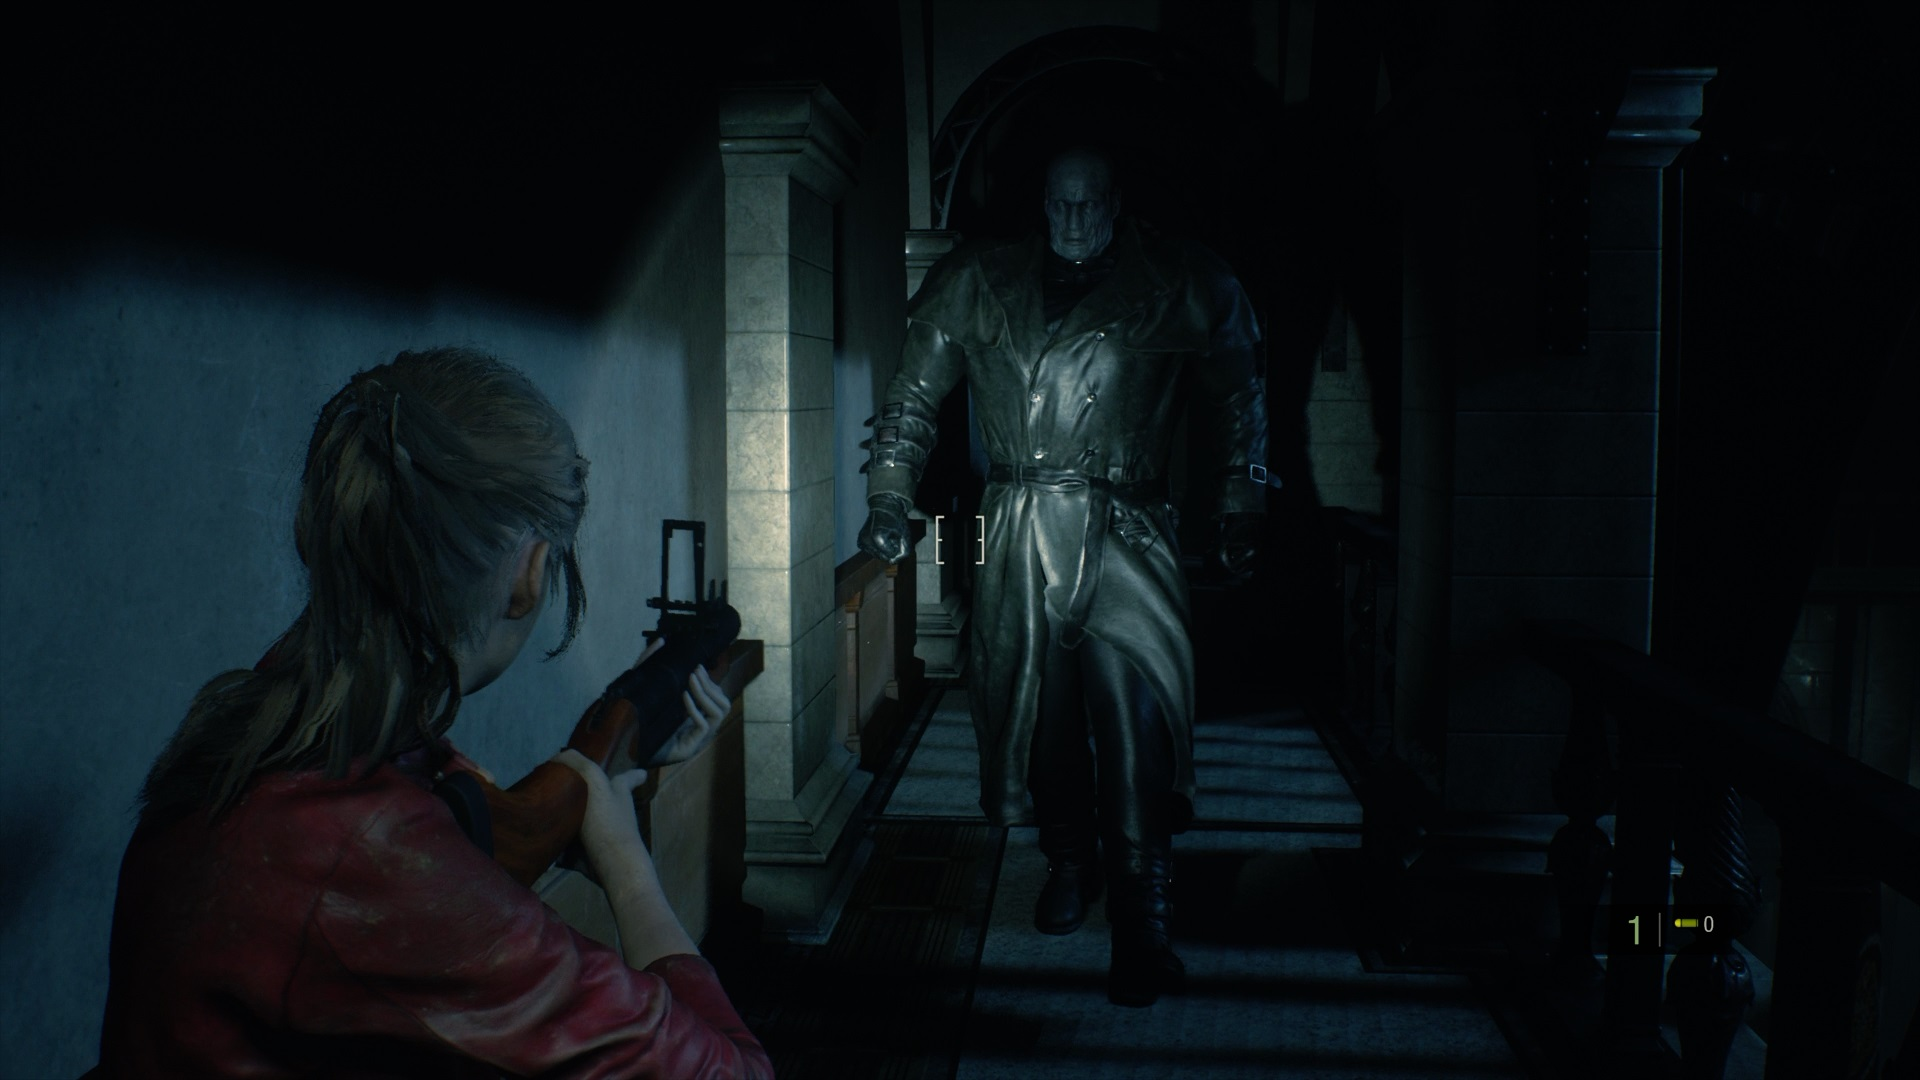 Timed Resident Evil 2 Demo Coming Very Soon Gamewatcher